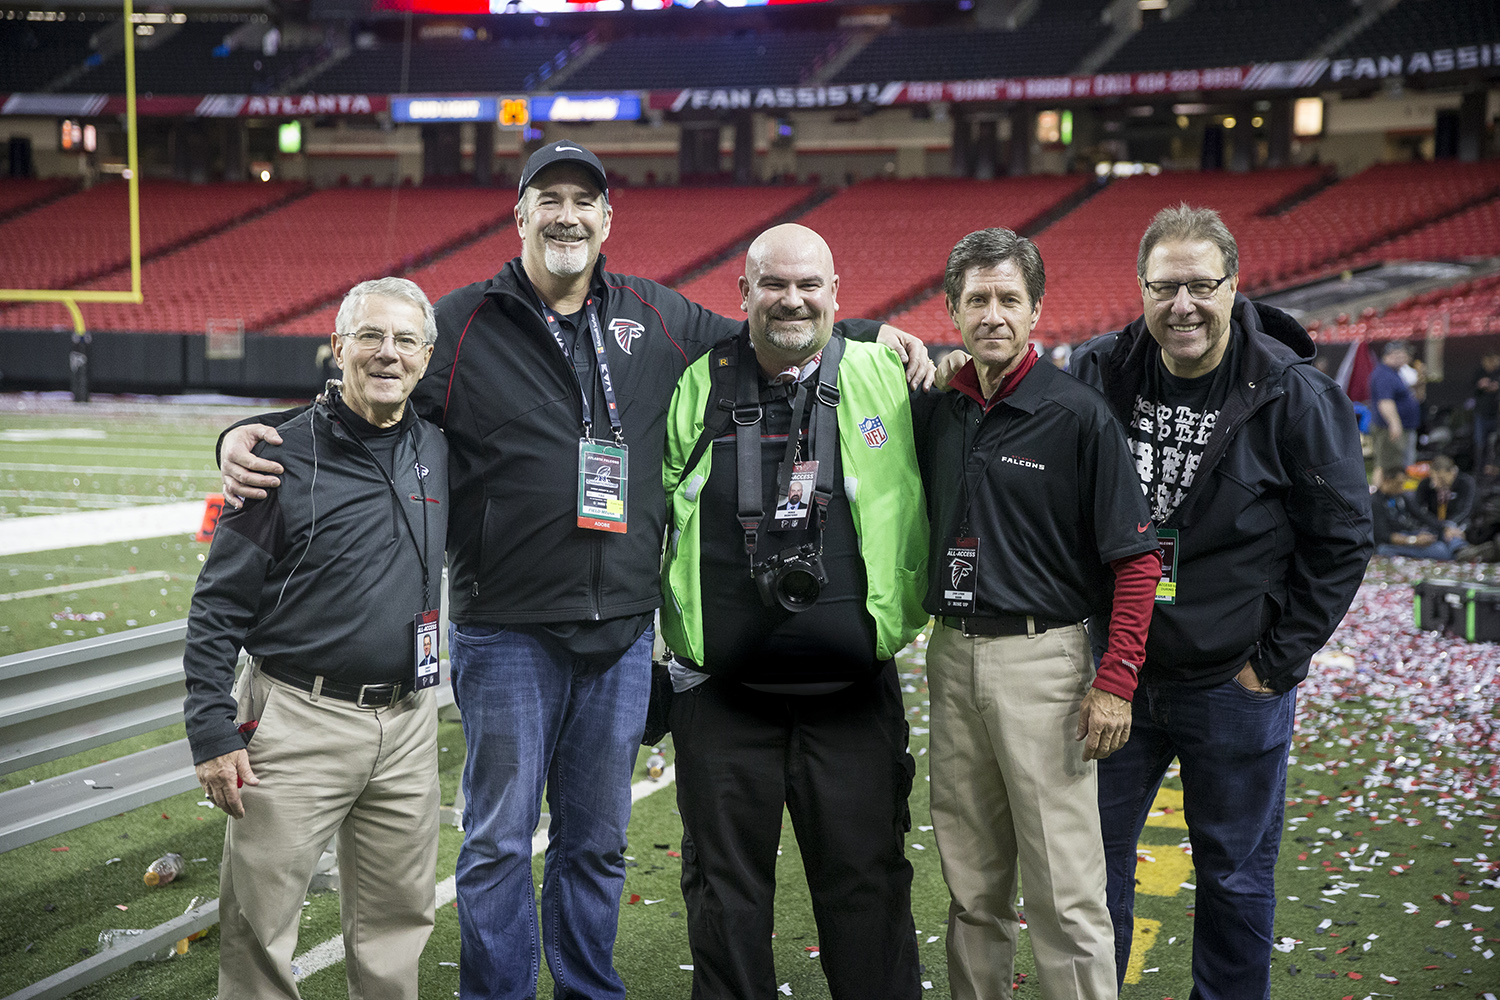 NFC Championship Game: (left to right) Jimmy Cribb, Winston Hendrickson, Mike Benford, Lynn Bass, Scott Kelby